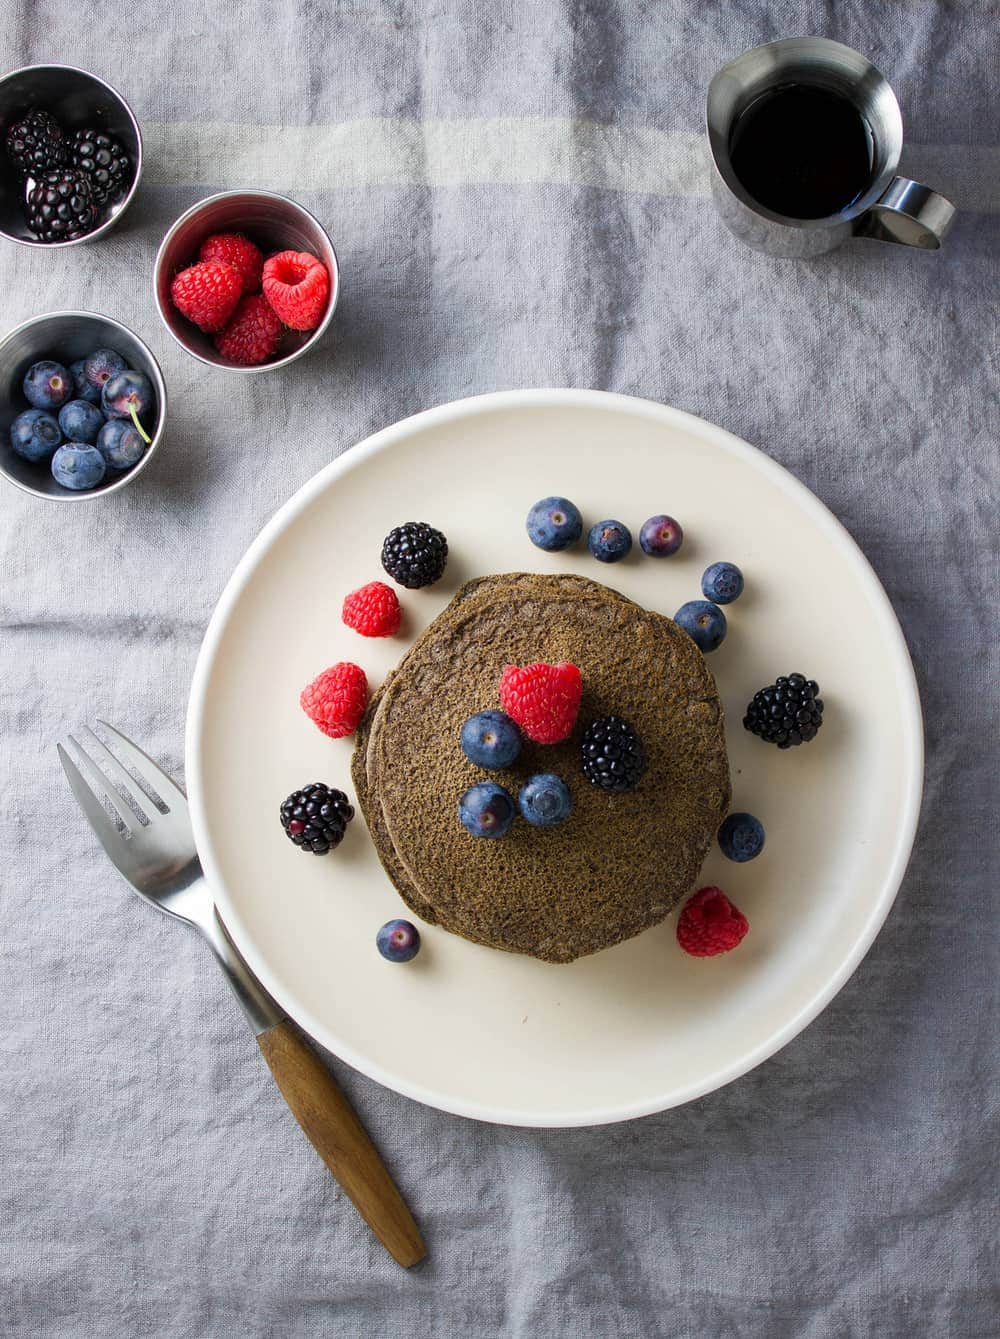 BUTTERMILK BUCKWHEAT PANCAKES